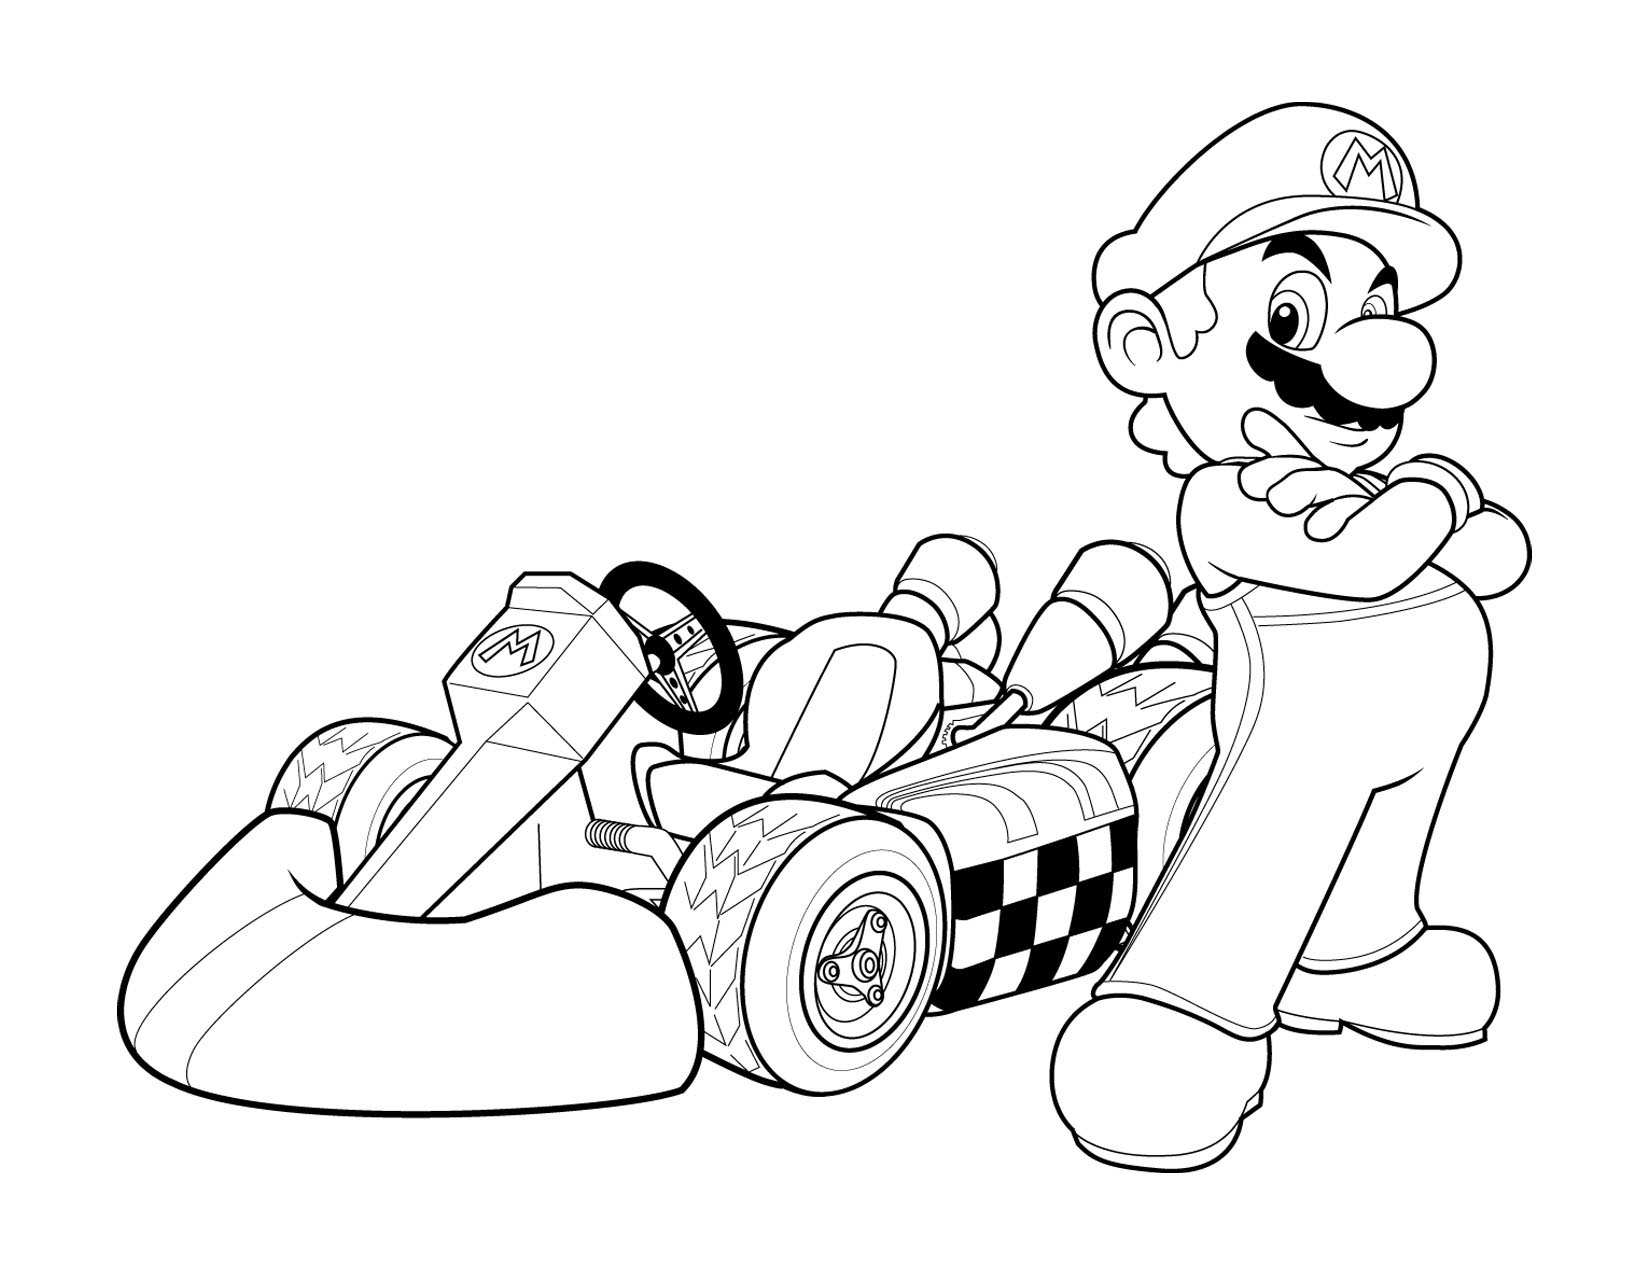 Super Mario and his car